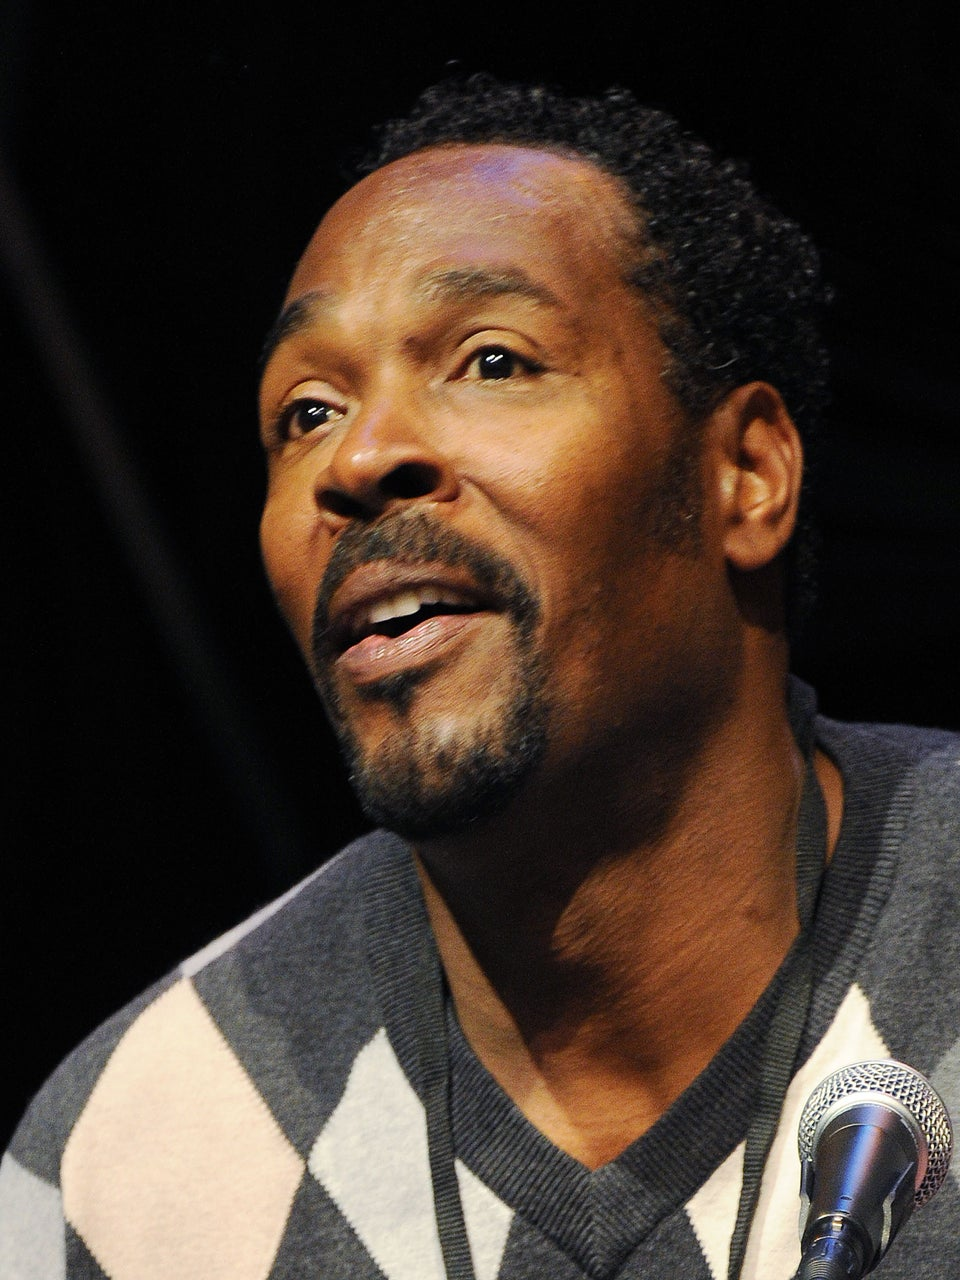 New Details Released on Rodney King's Death